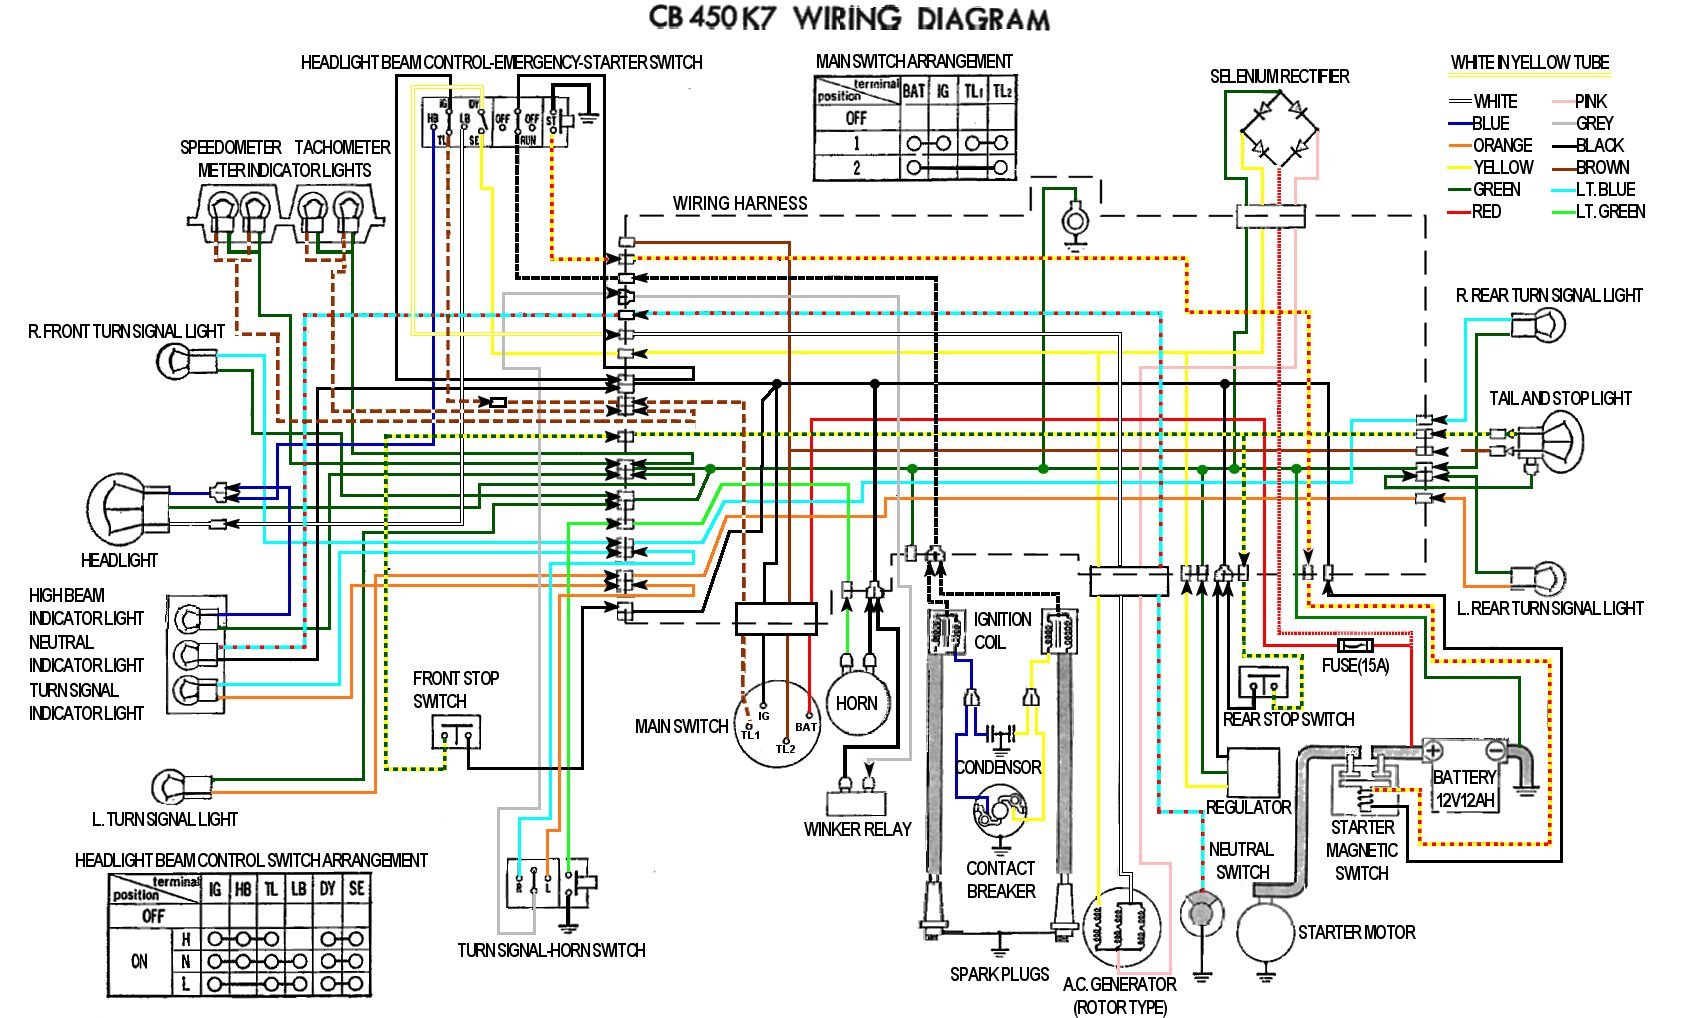 cb450 color wiring diagram now corrected rh hondatwins net 1975 Honda 360 Wiring-Diagram honda cb450 wiring schematic